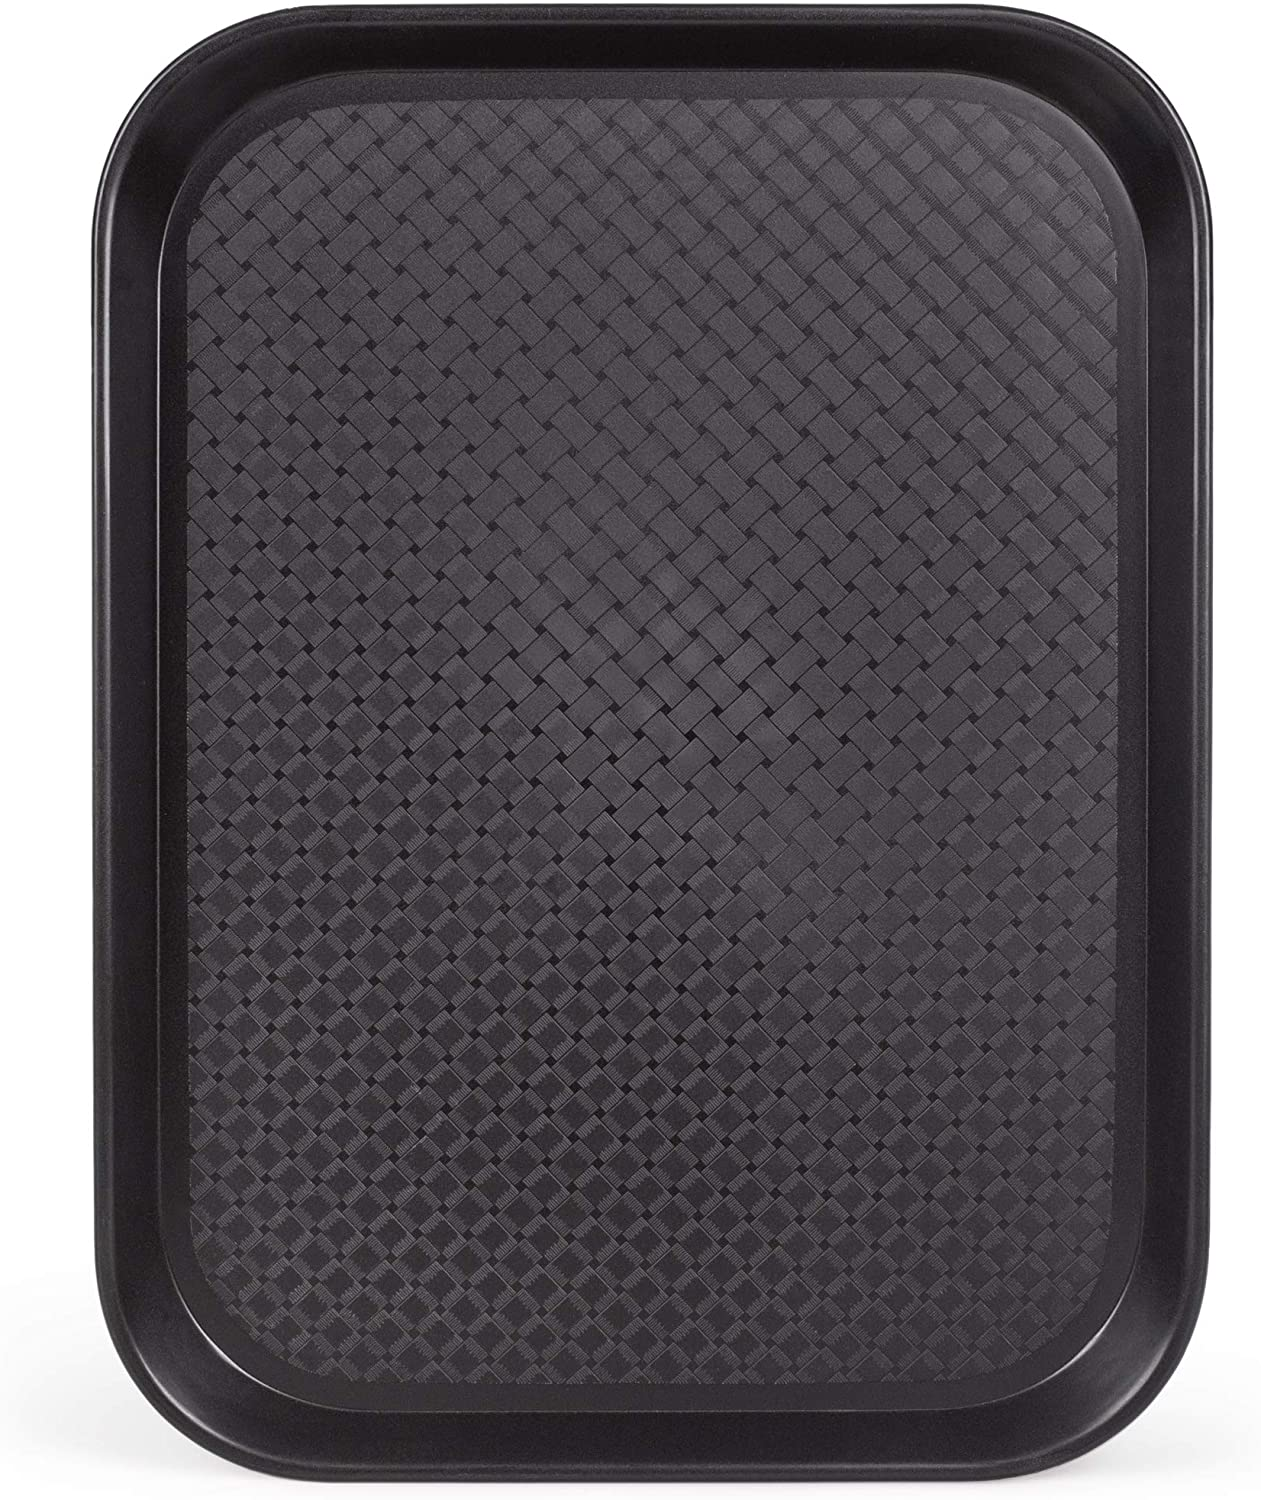 Fast Food Cafeteria Tray | 12 x 16 Rectangular Textured Plastic Food Serving TV Tray | School Lunch, Diner, & Commercial Kitchen Restaurant Equipment (Black)